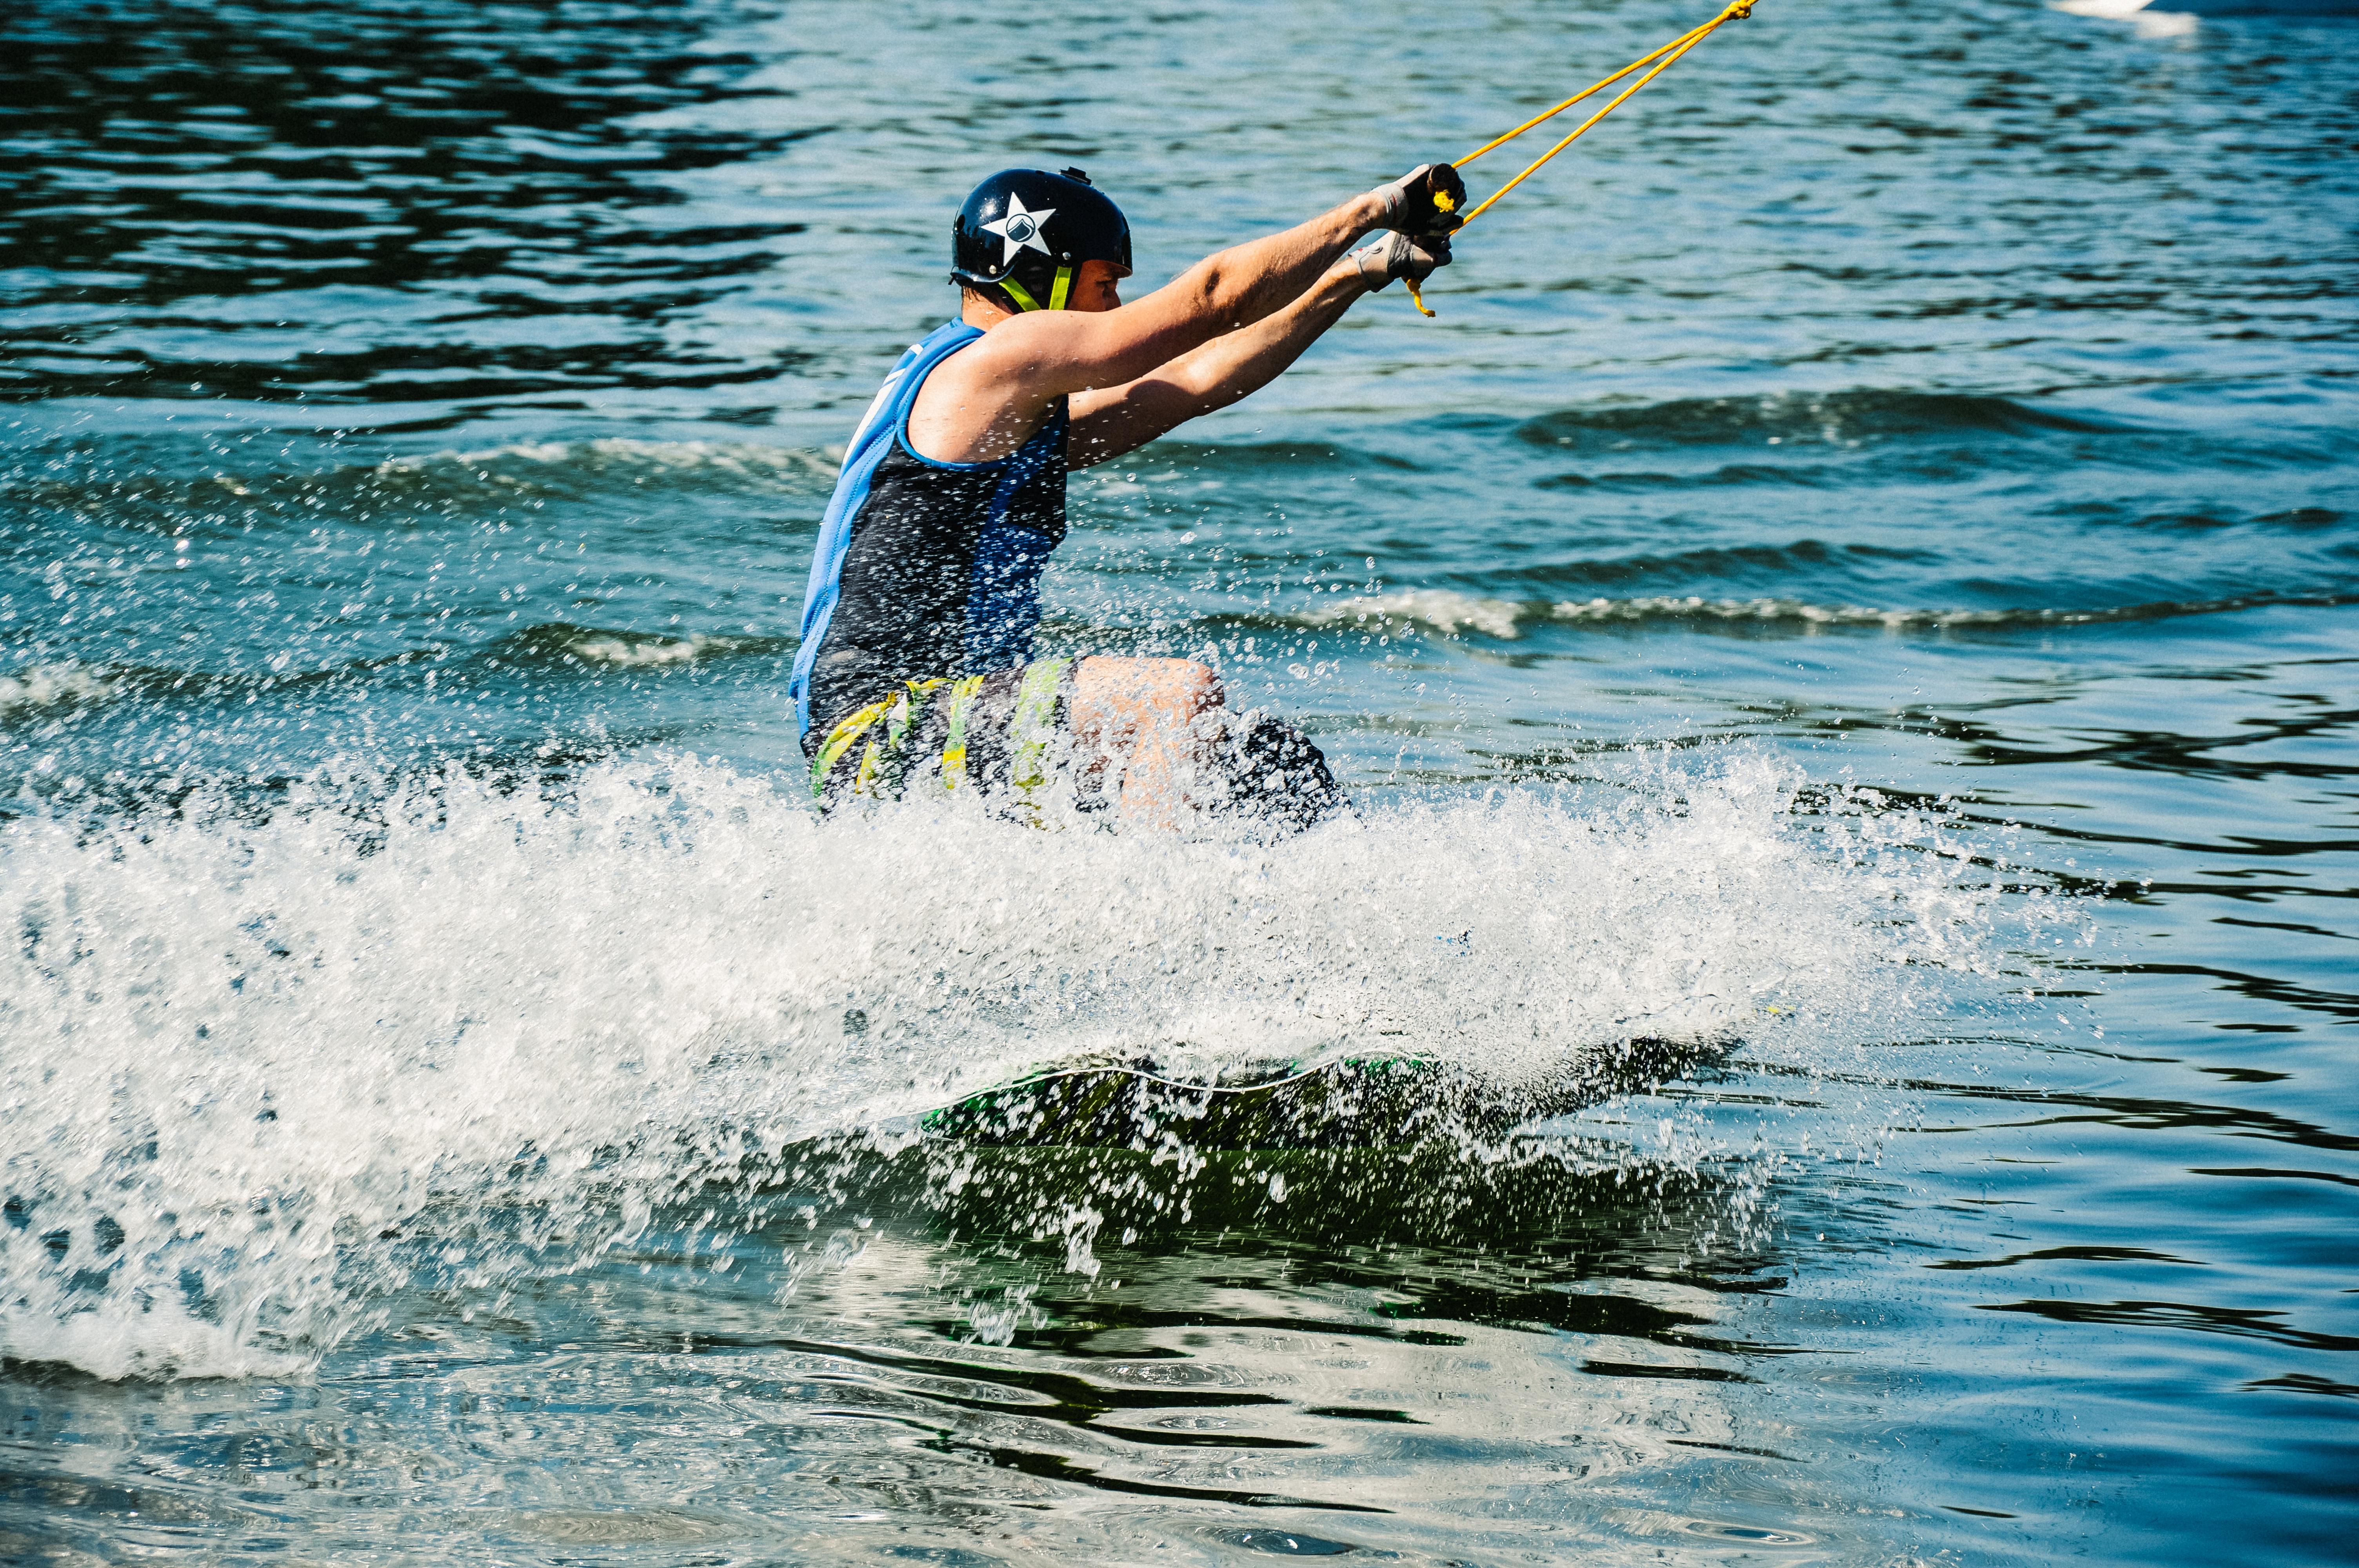 Wakeboarding activity